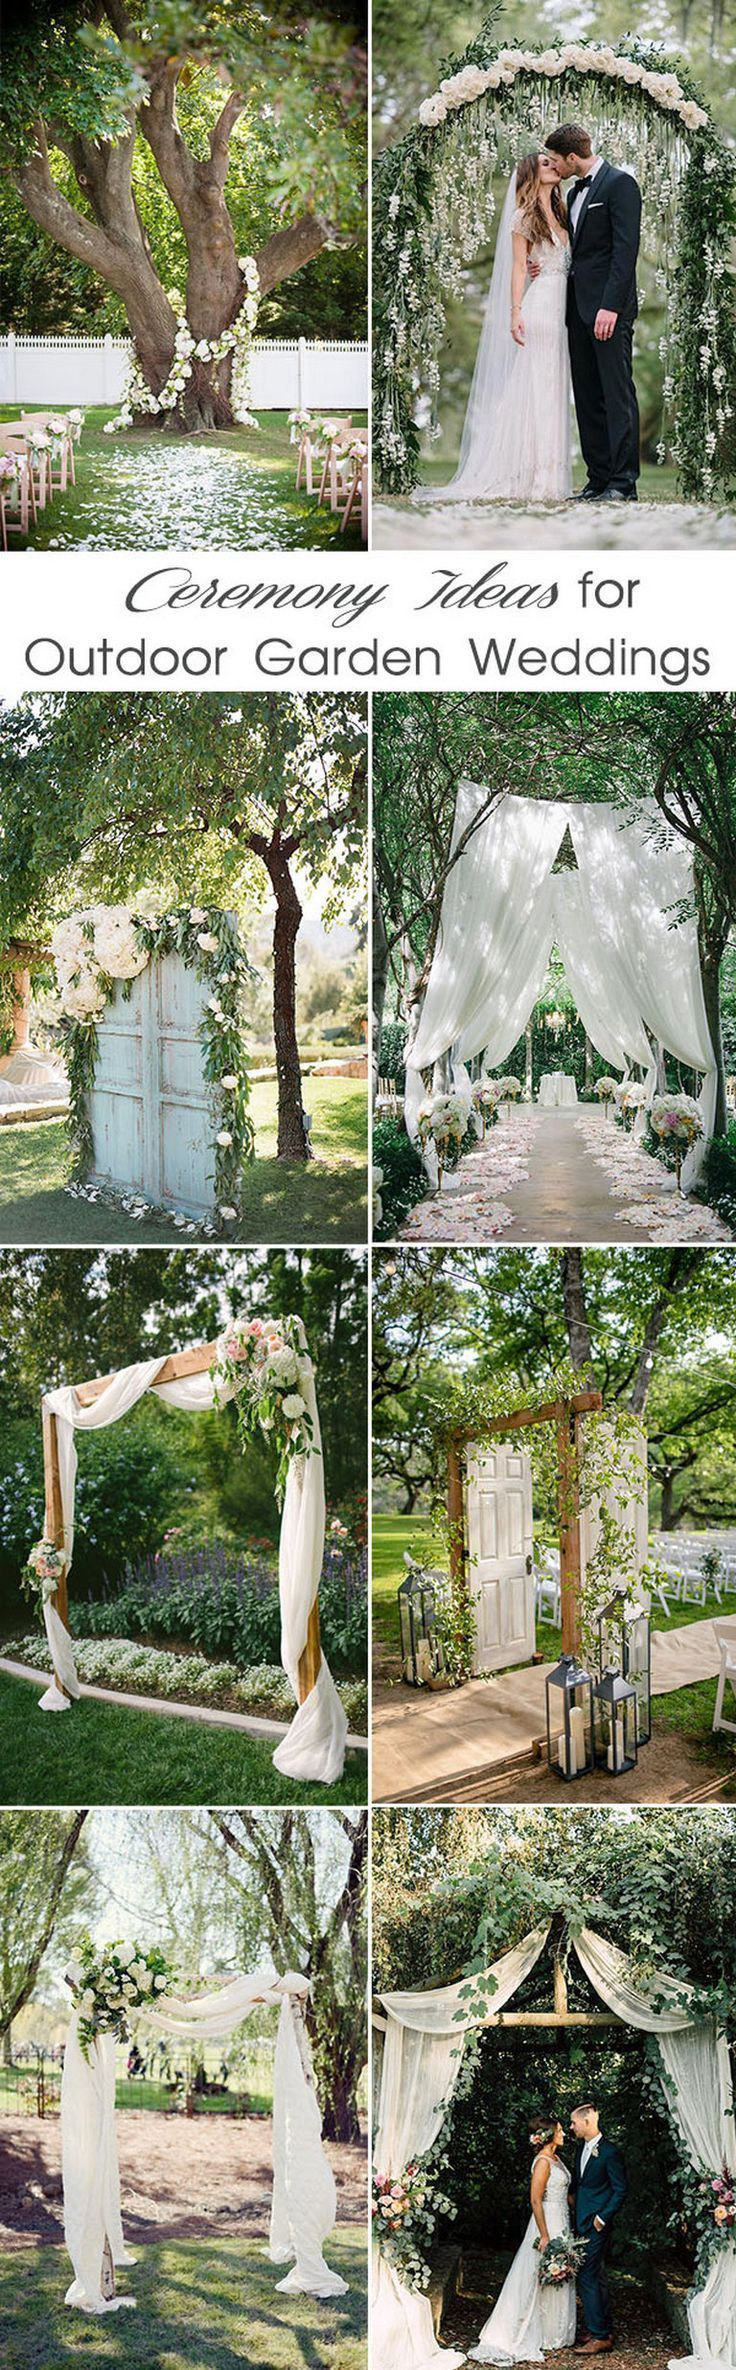 Ideas for wedding decorations outside  Connect about Outdoor Wedding Ideas For Summer On A Budget Outdoor